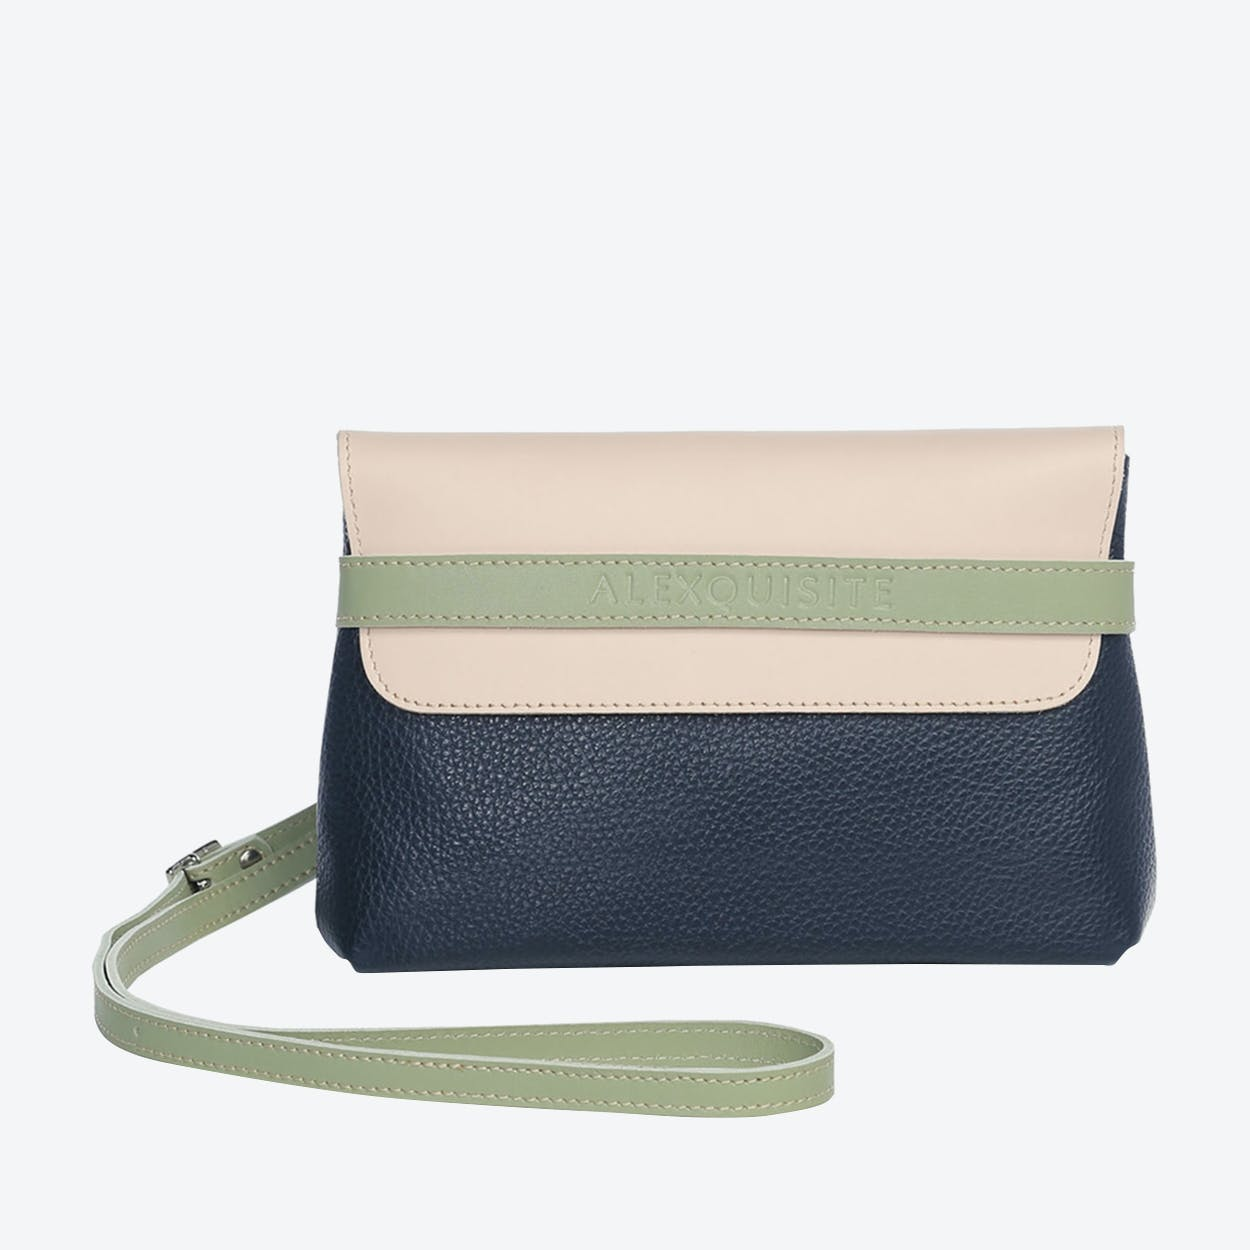 _ONE Crossbody in Olive